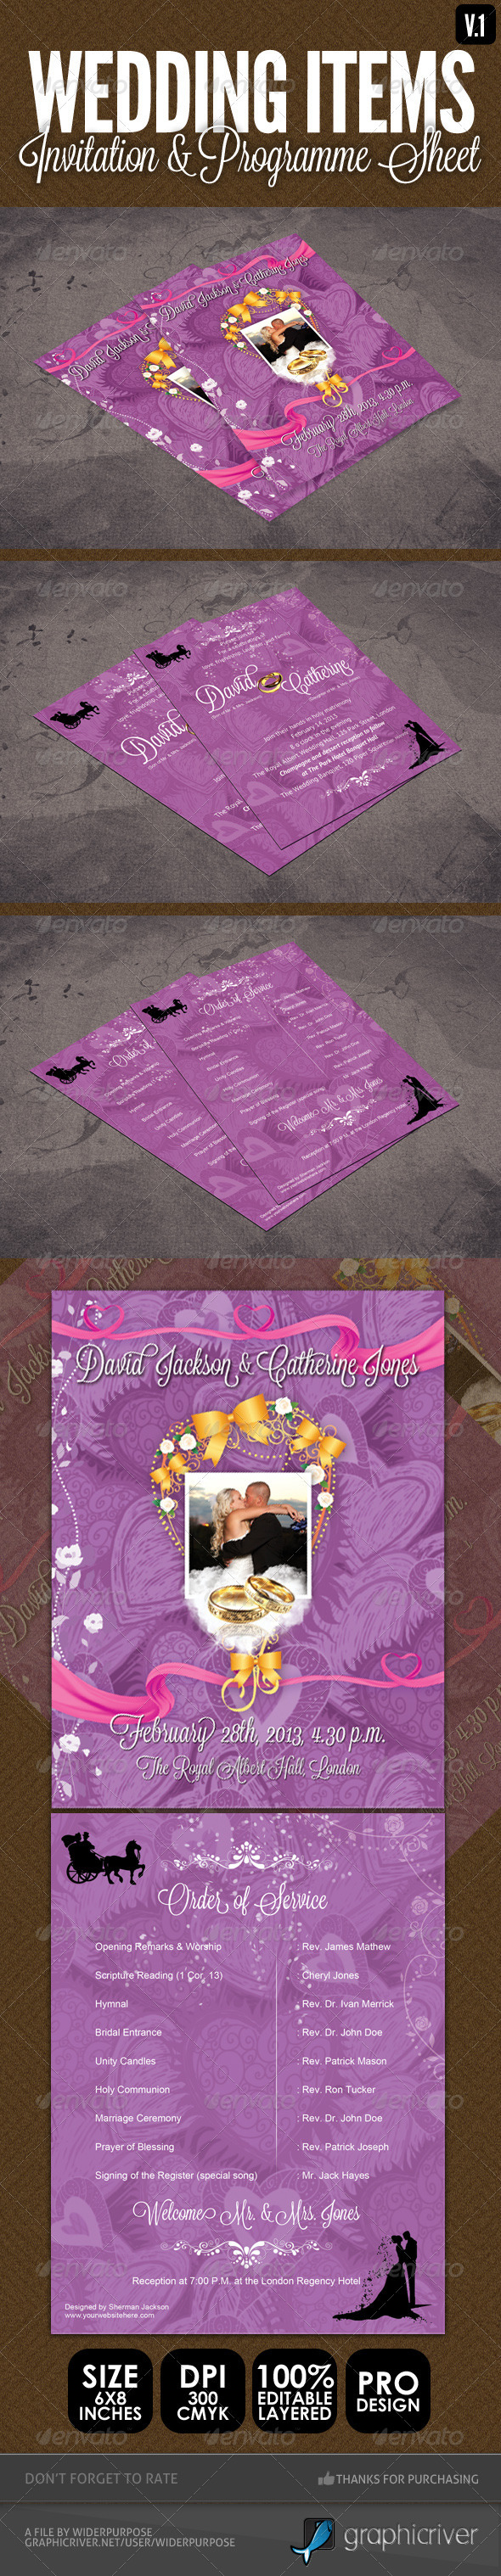 GraphicRiver Wedding Items Programme Sheet & Order of Service 4023579